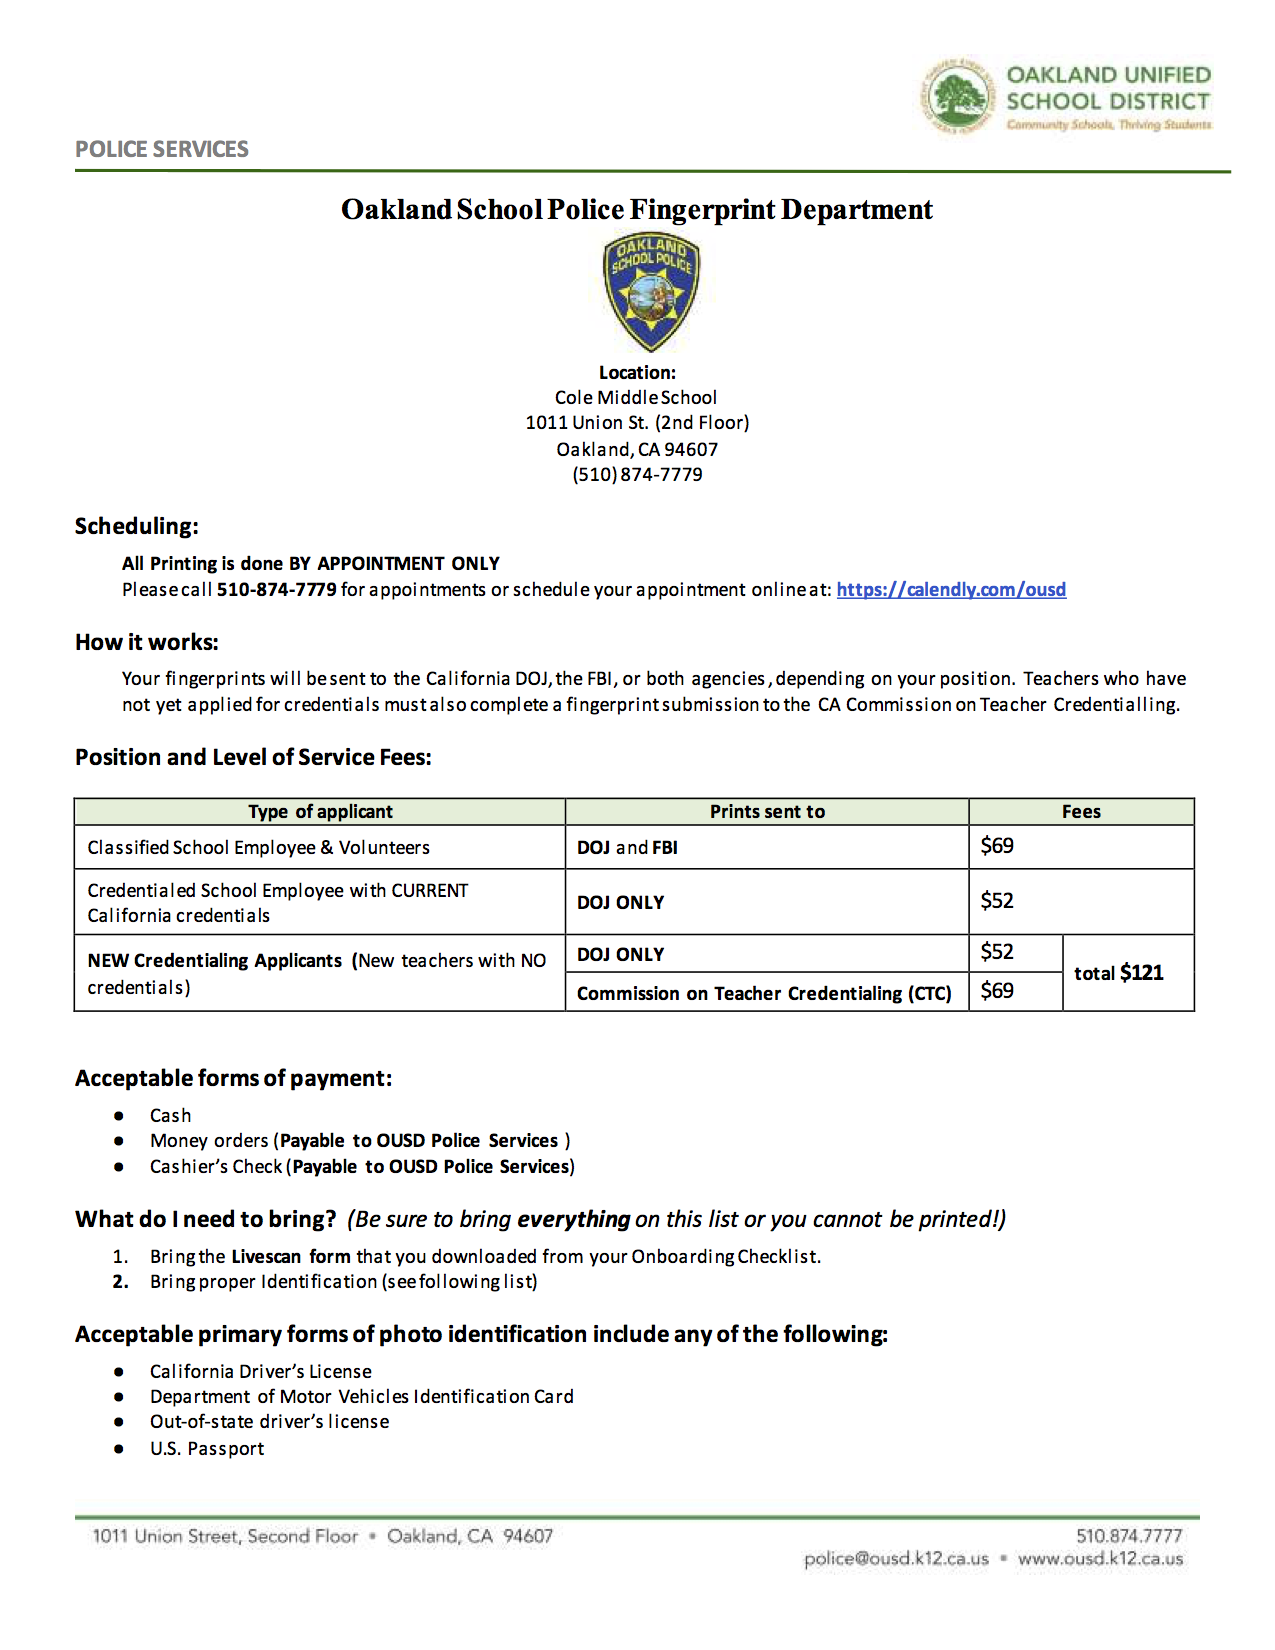 Fingerprints Oakland Unified School District Human Resources